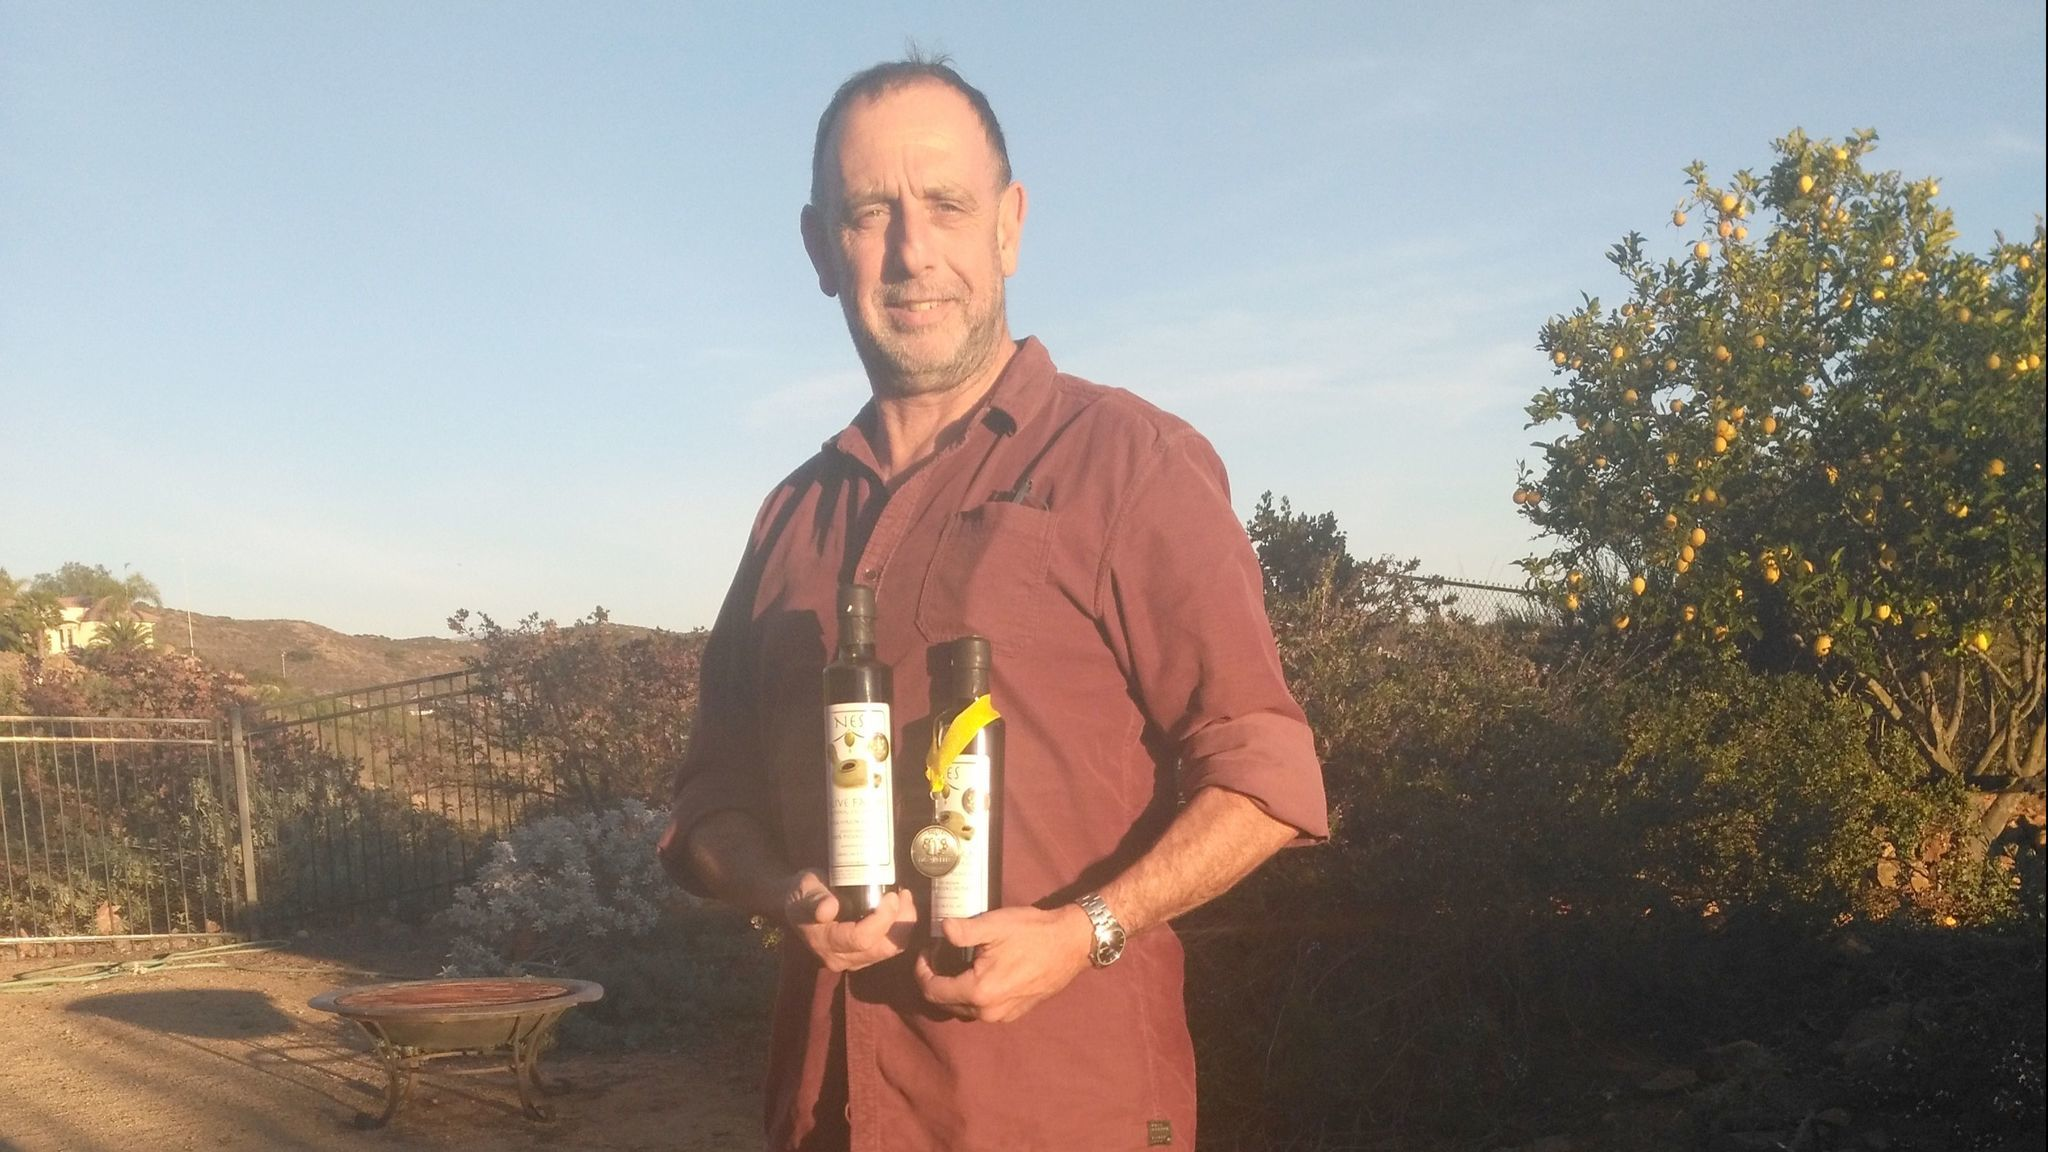 Yigal Ben-Aderet holds bottles of his award-winning olive oil. Only about 300 bottles of the oil were produced on his NES Olive Farm in 2017.